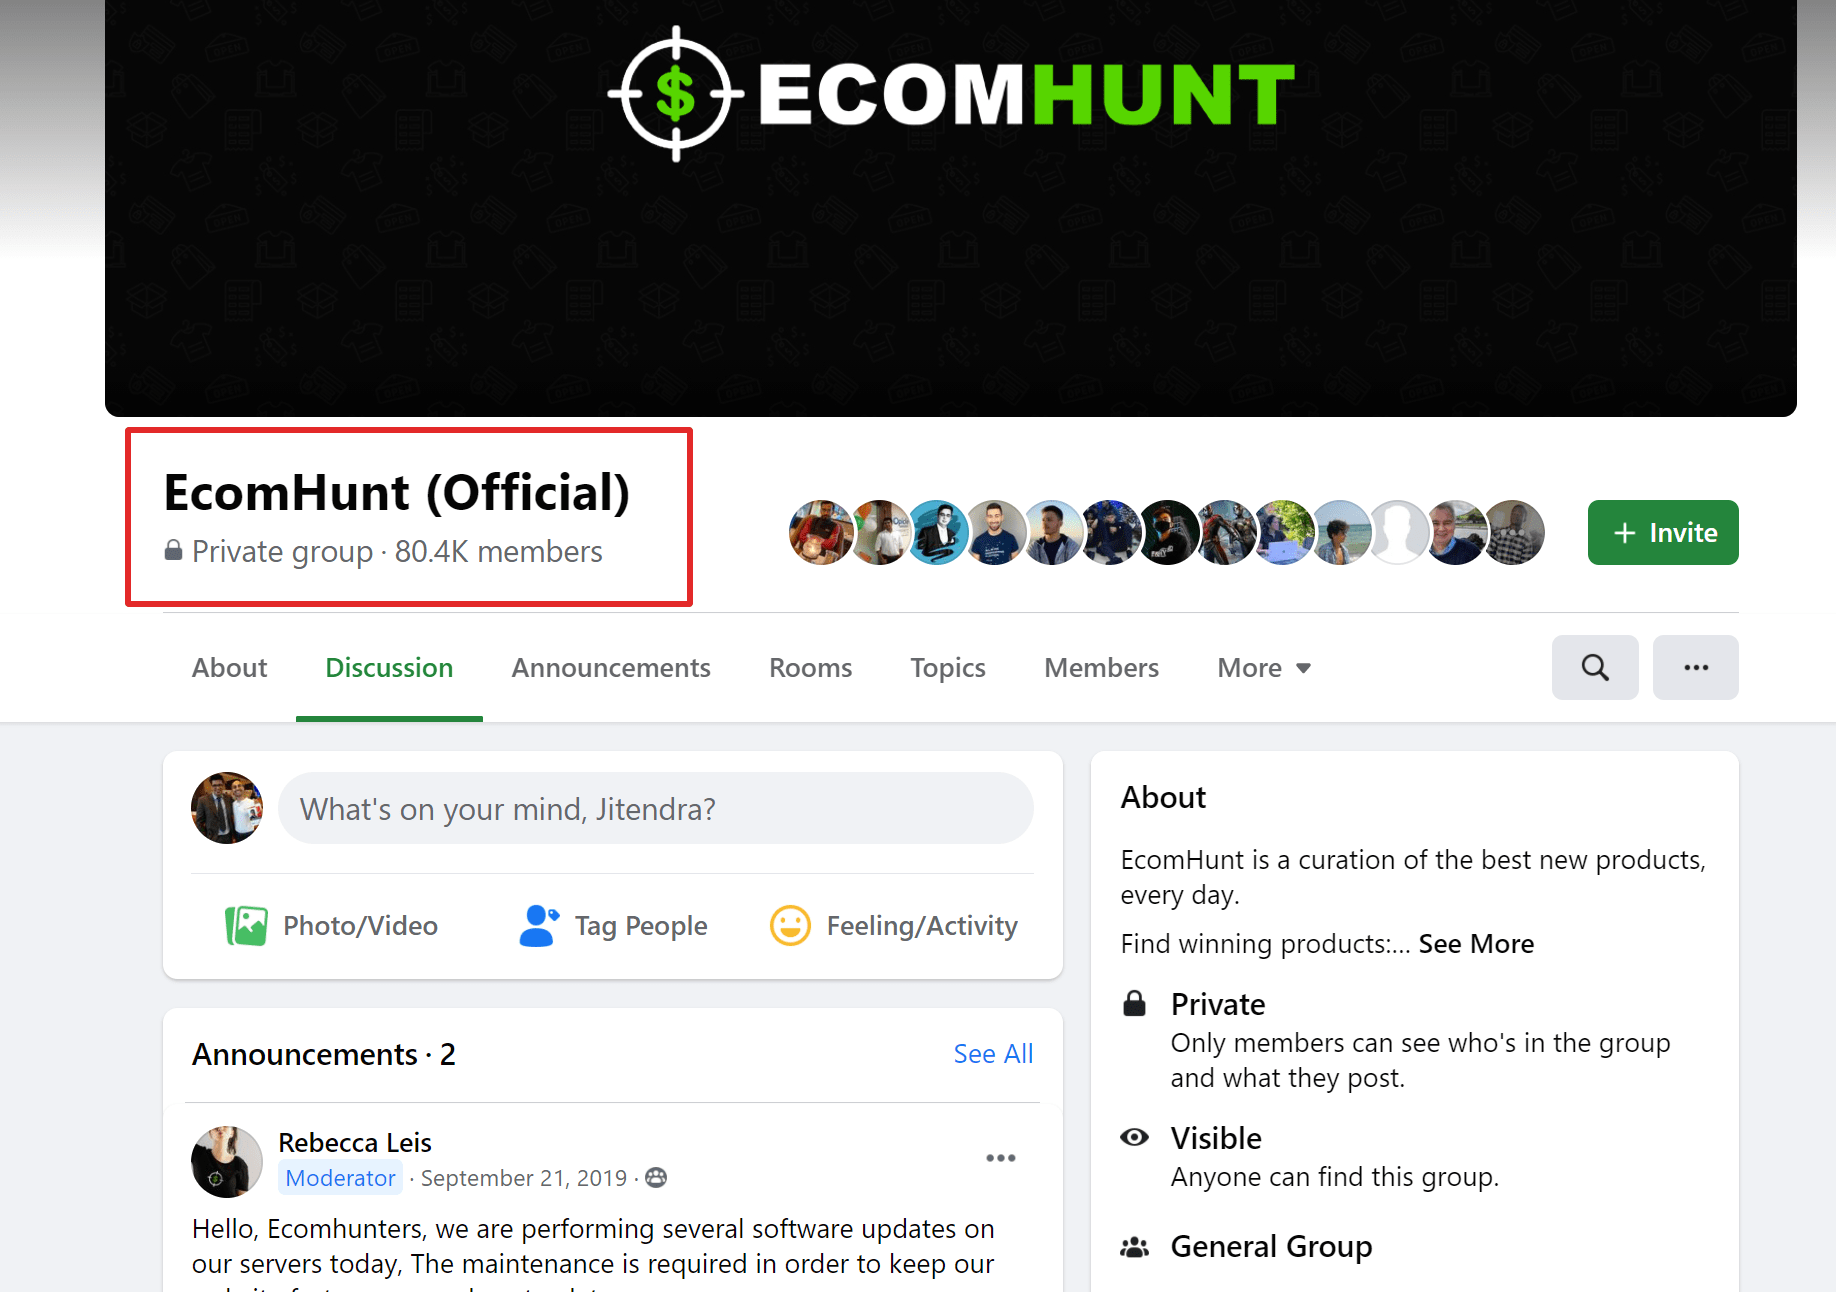 Ecomhunt reviews on facebook